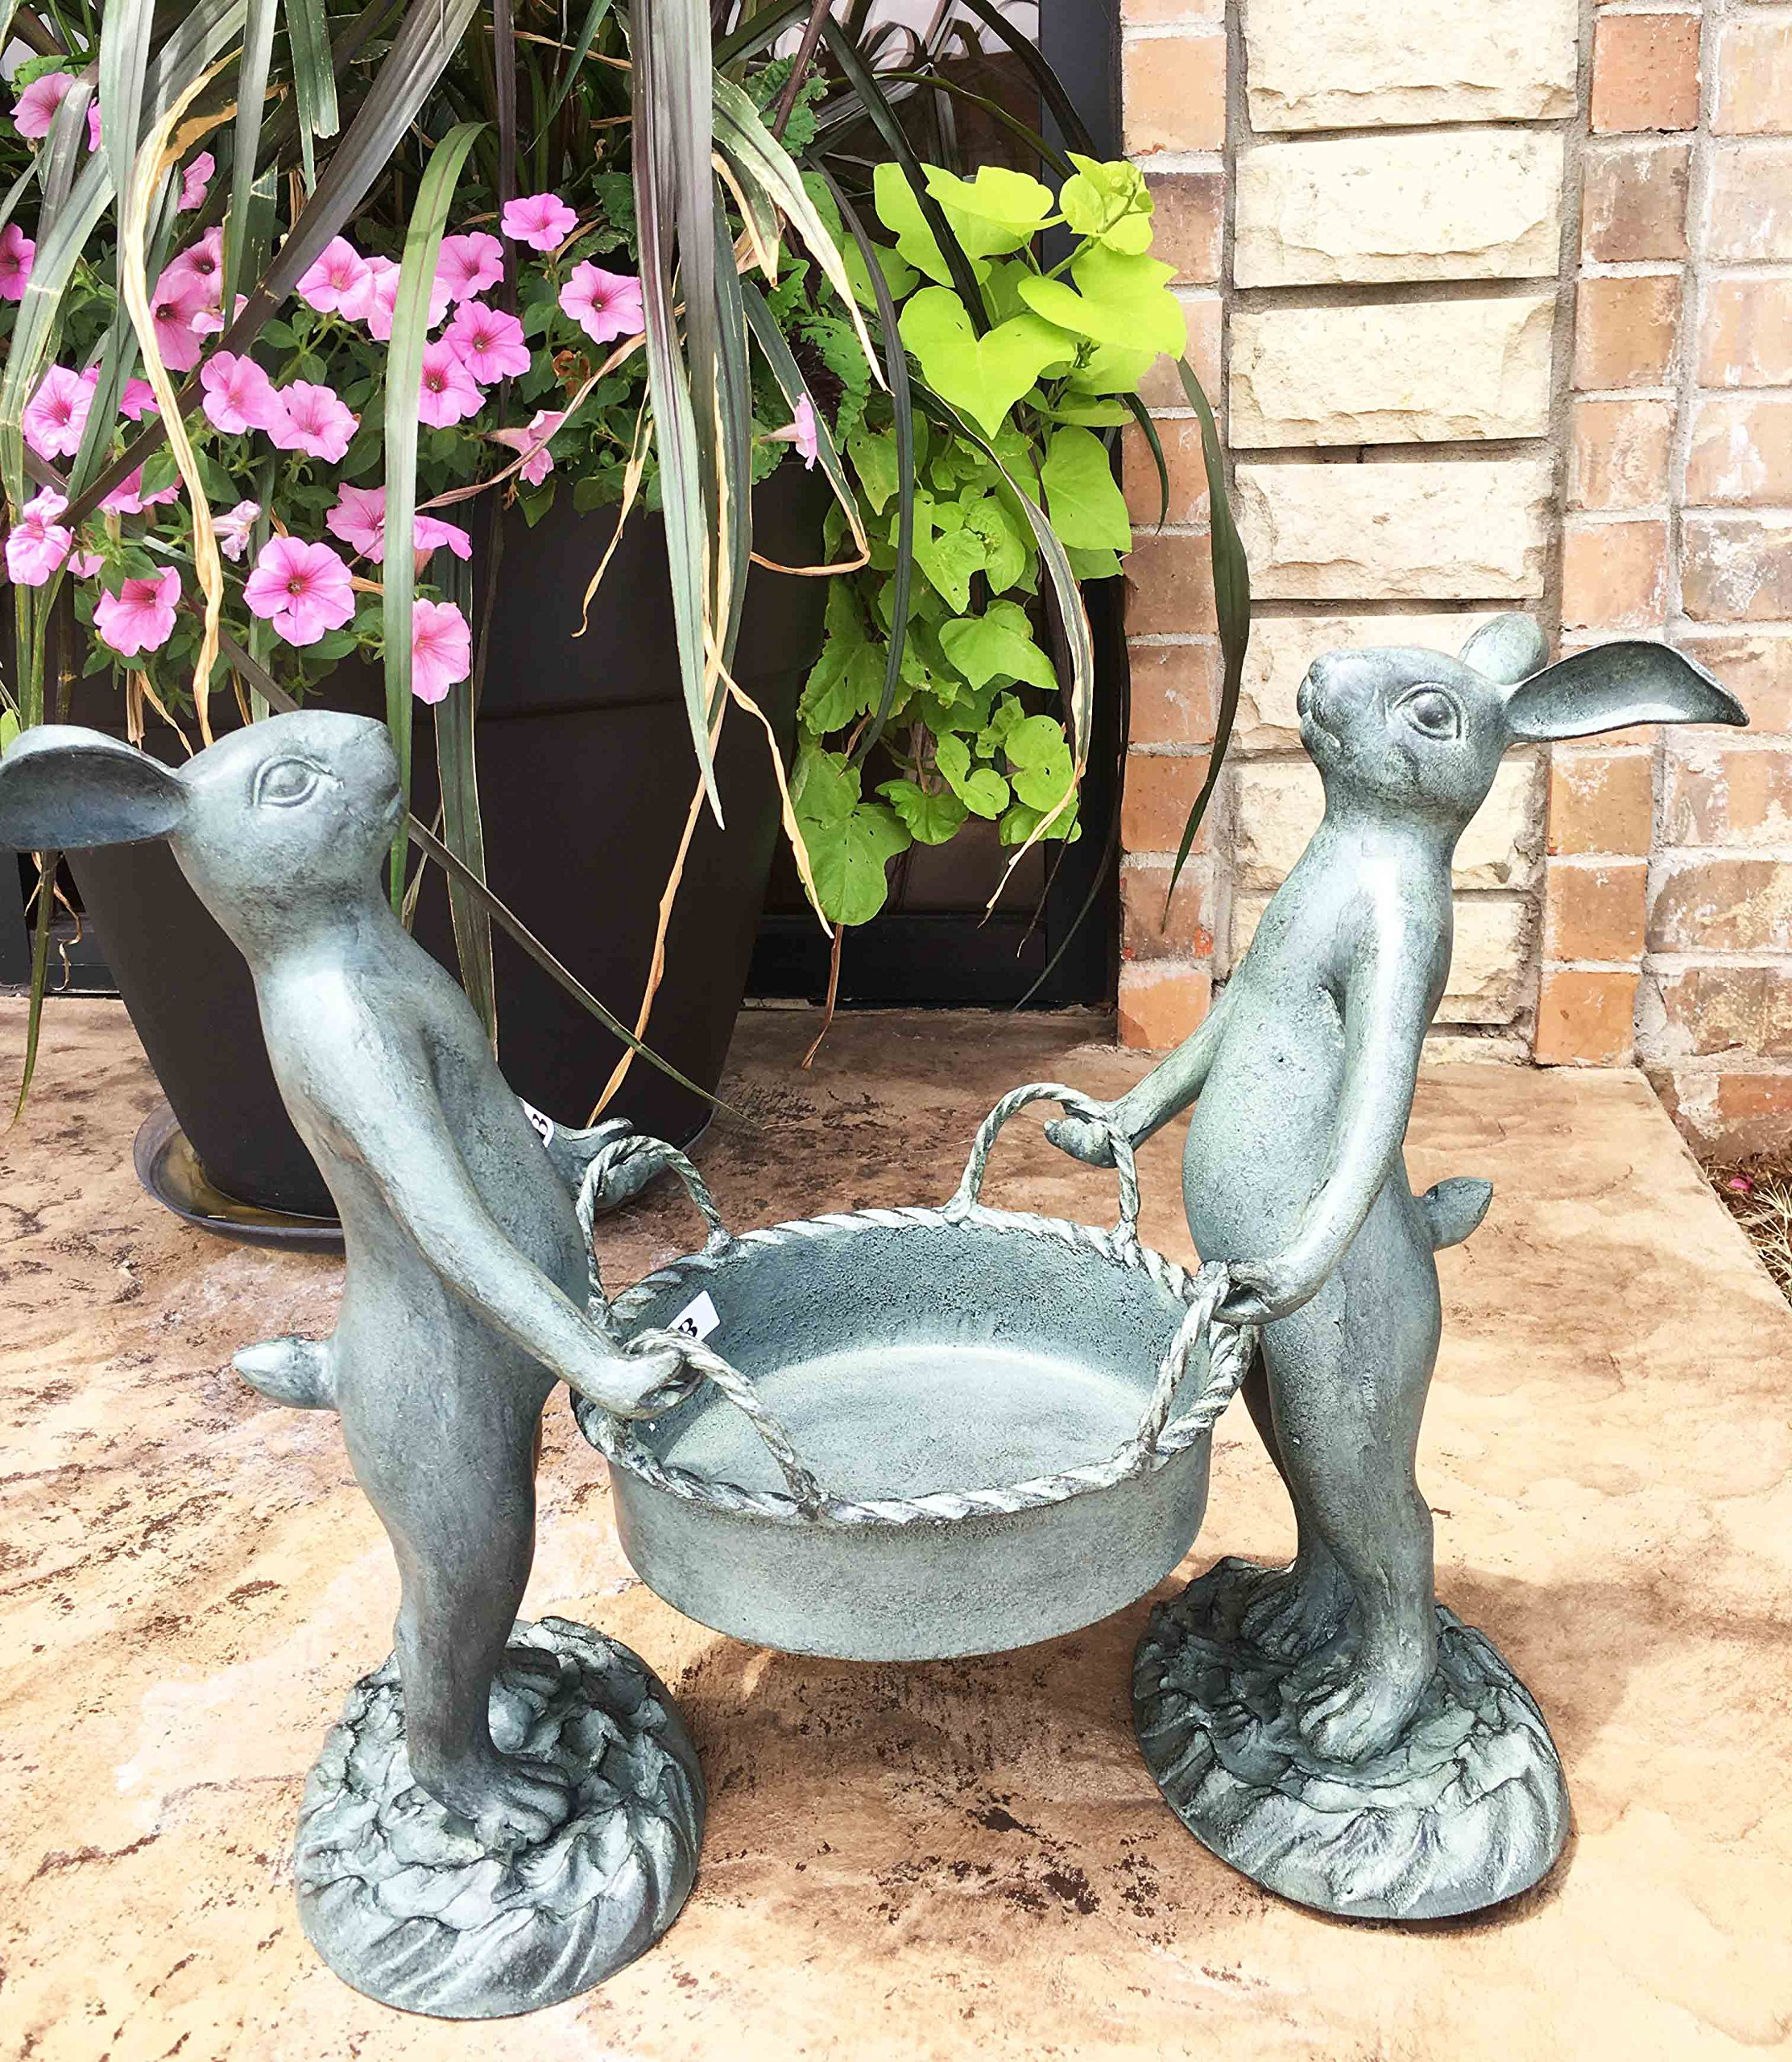 Whimsical Hardworking Bunny Rabbit Gardeners Flower Pot Planter Holder Garden Decor Aluminum Statue For Pool Patio Decoration Functional Nature Outdoor by Gifts & Decors